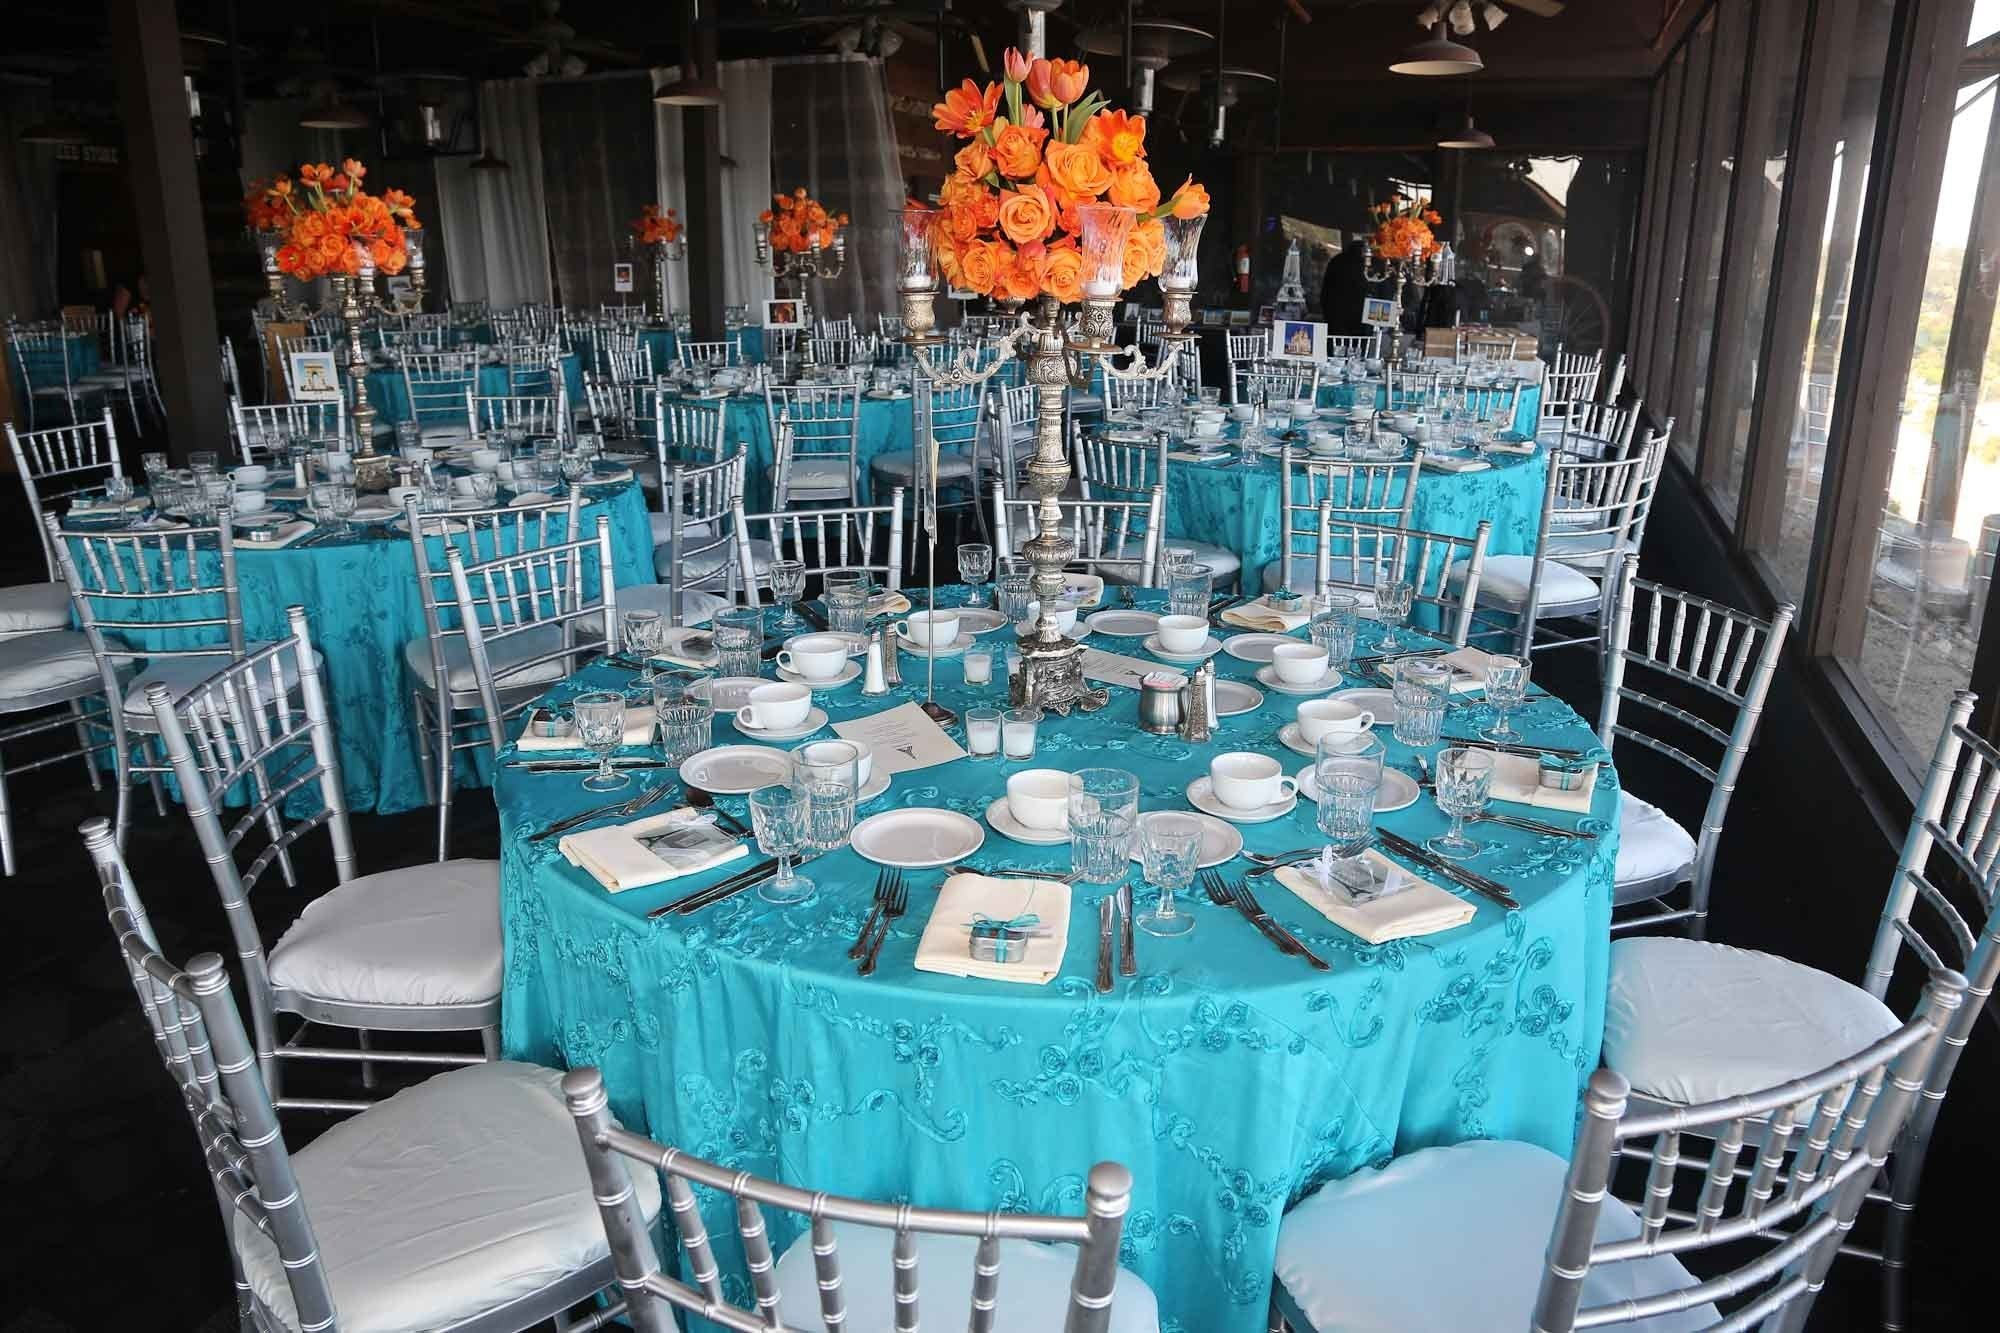 10 Most Popular Graduation Party Table Centerpiece Ideas grad party decoration ideas graduation party ideas pomona valley 5